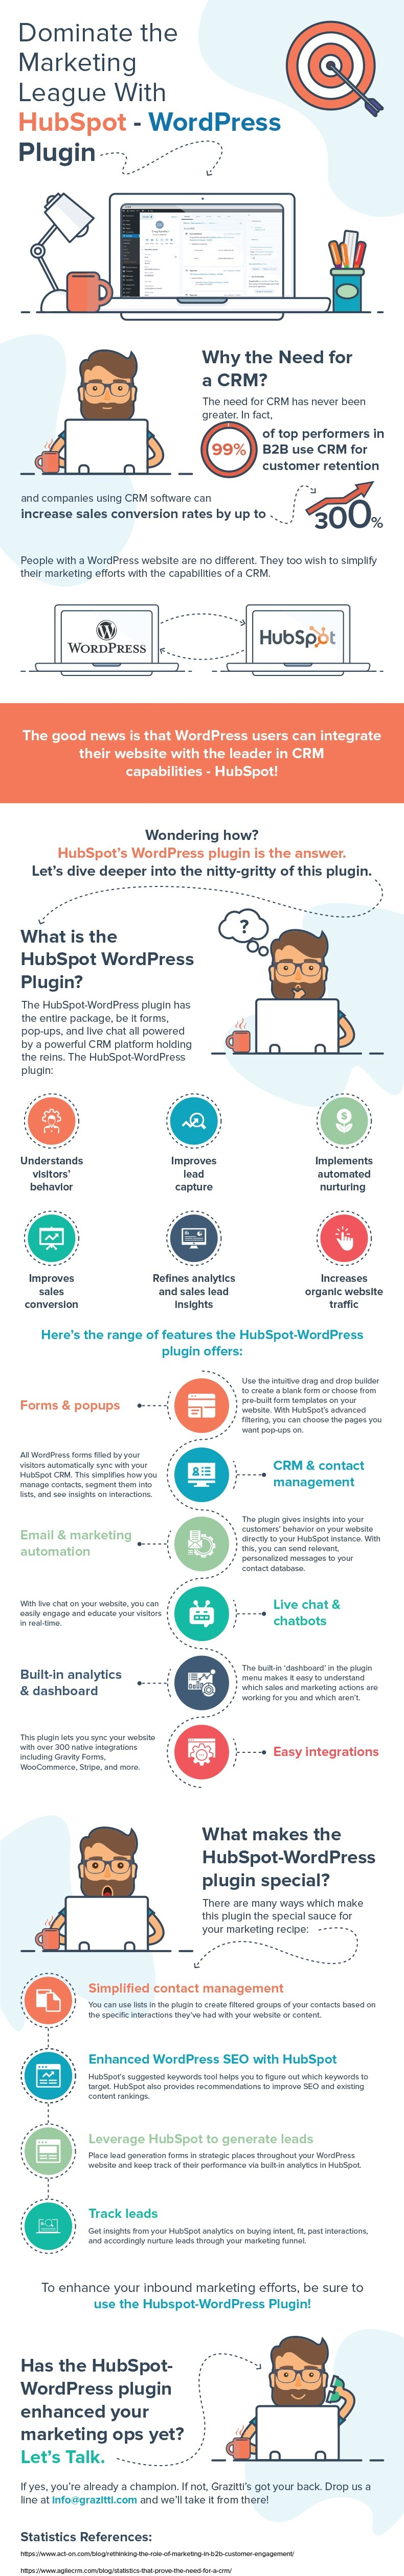 Dominate The Marketing League With HubSpot – WordPress Plugin #infographic